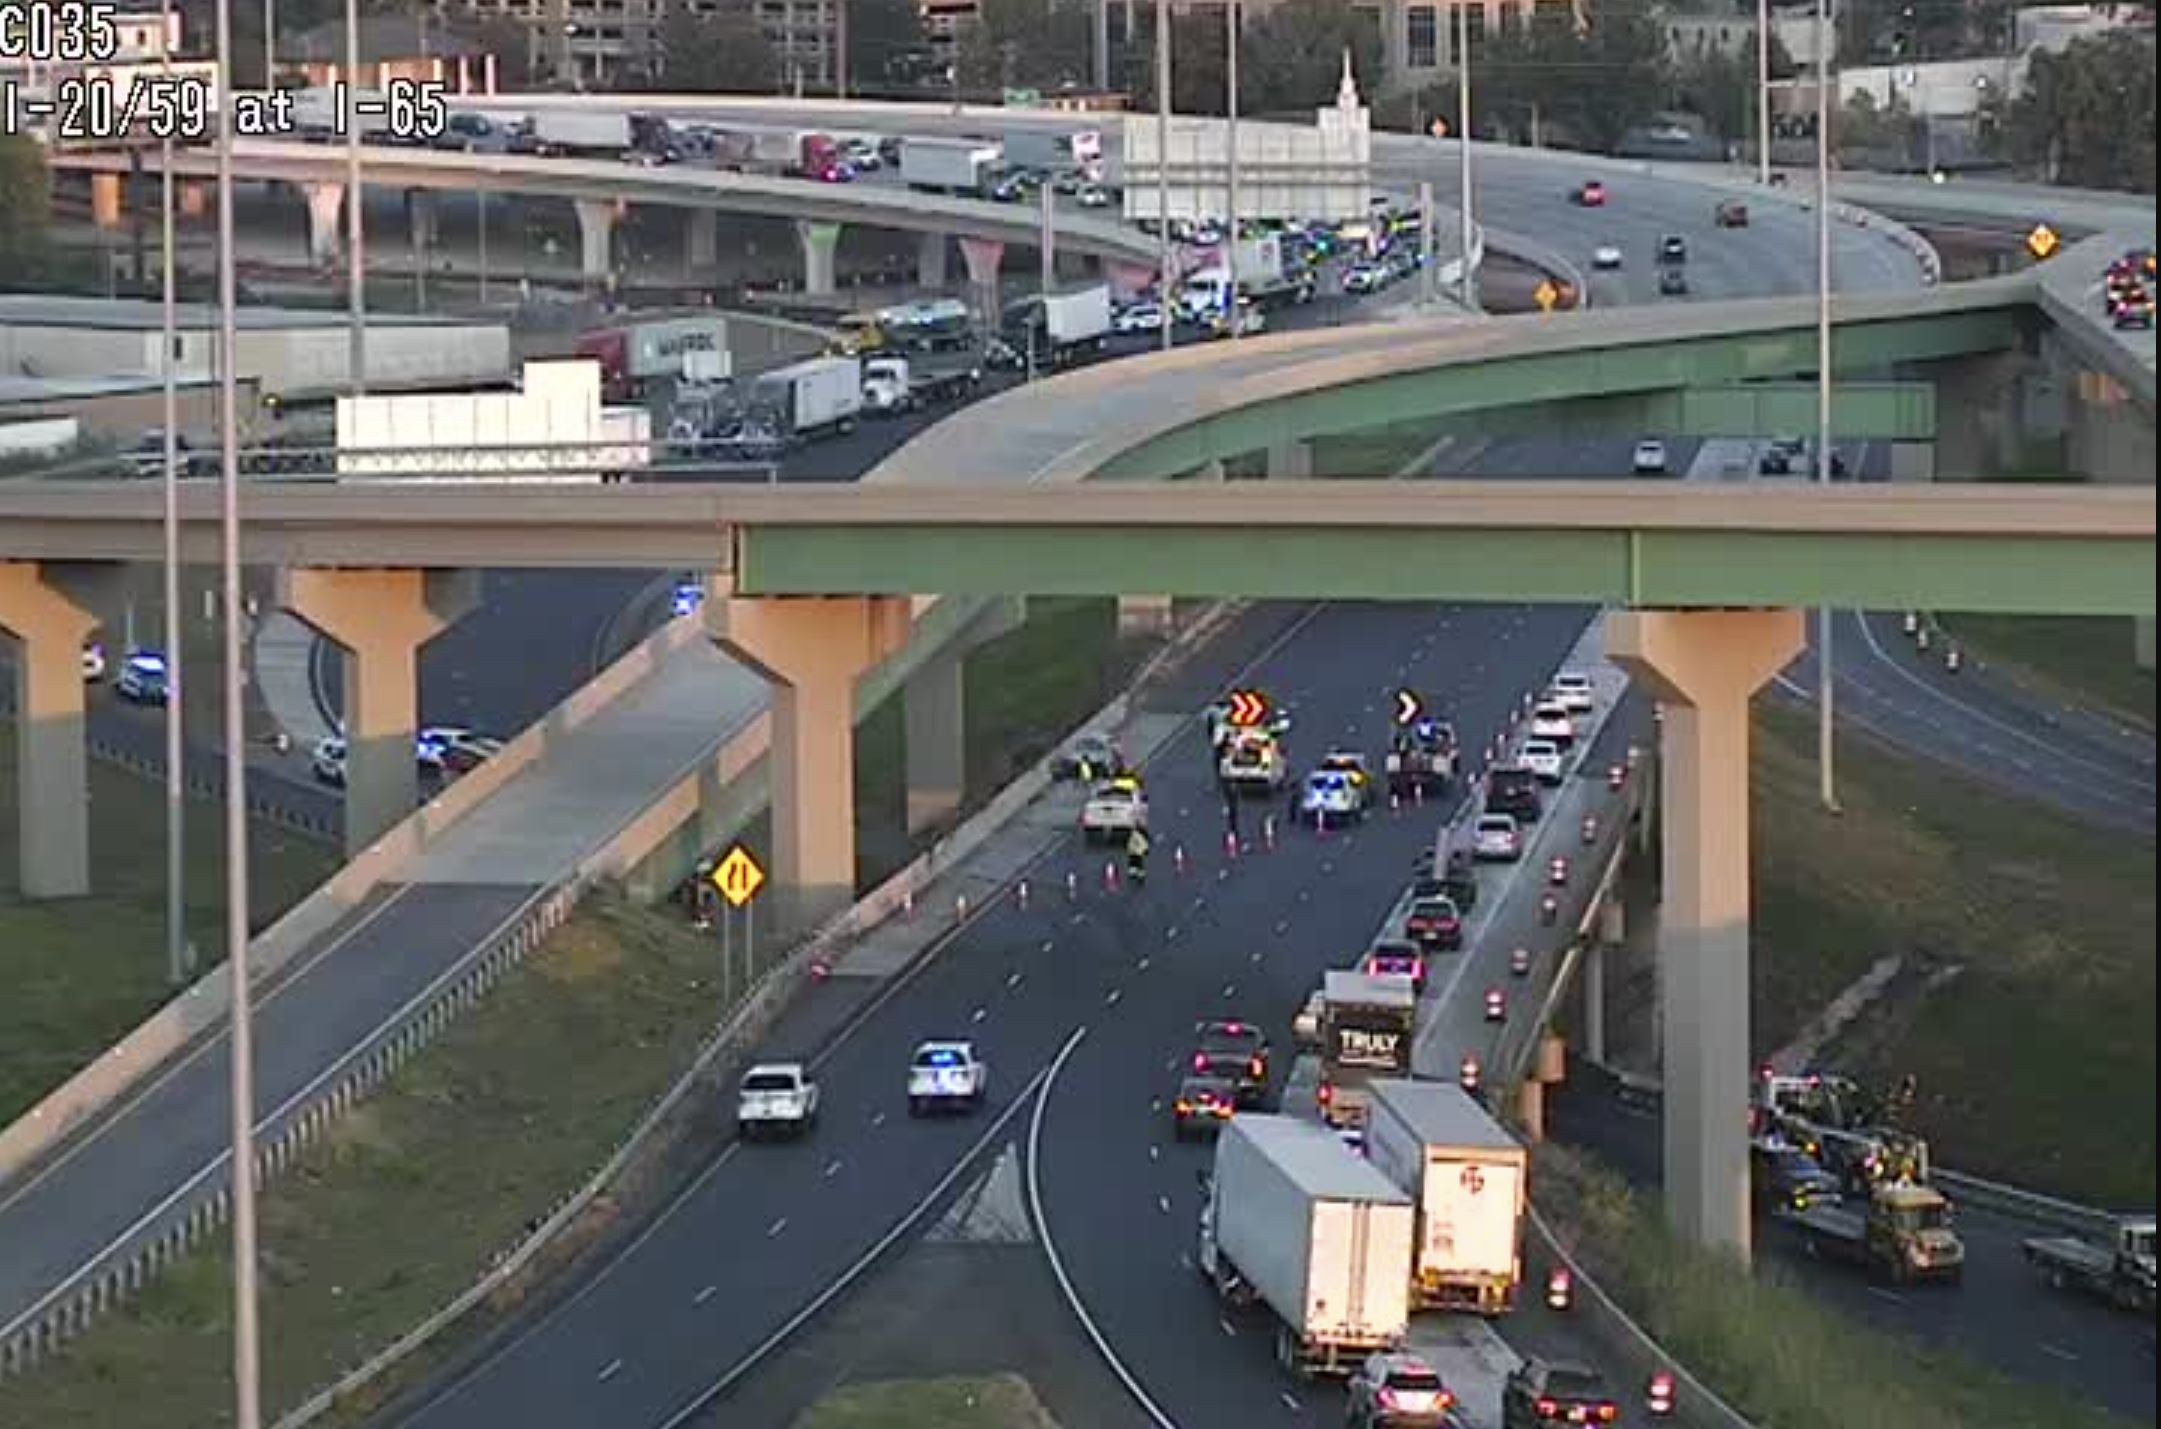 BREAKING: 1 person killed in crash at I-65/I-59 interchange in Birmingham